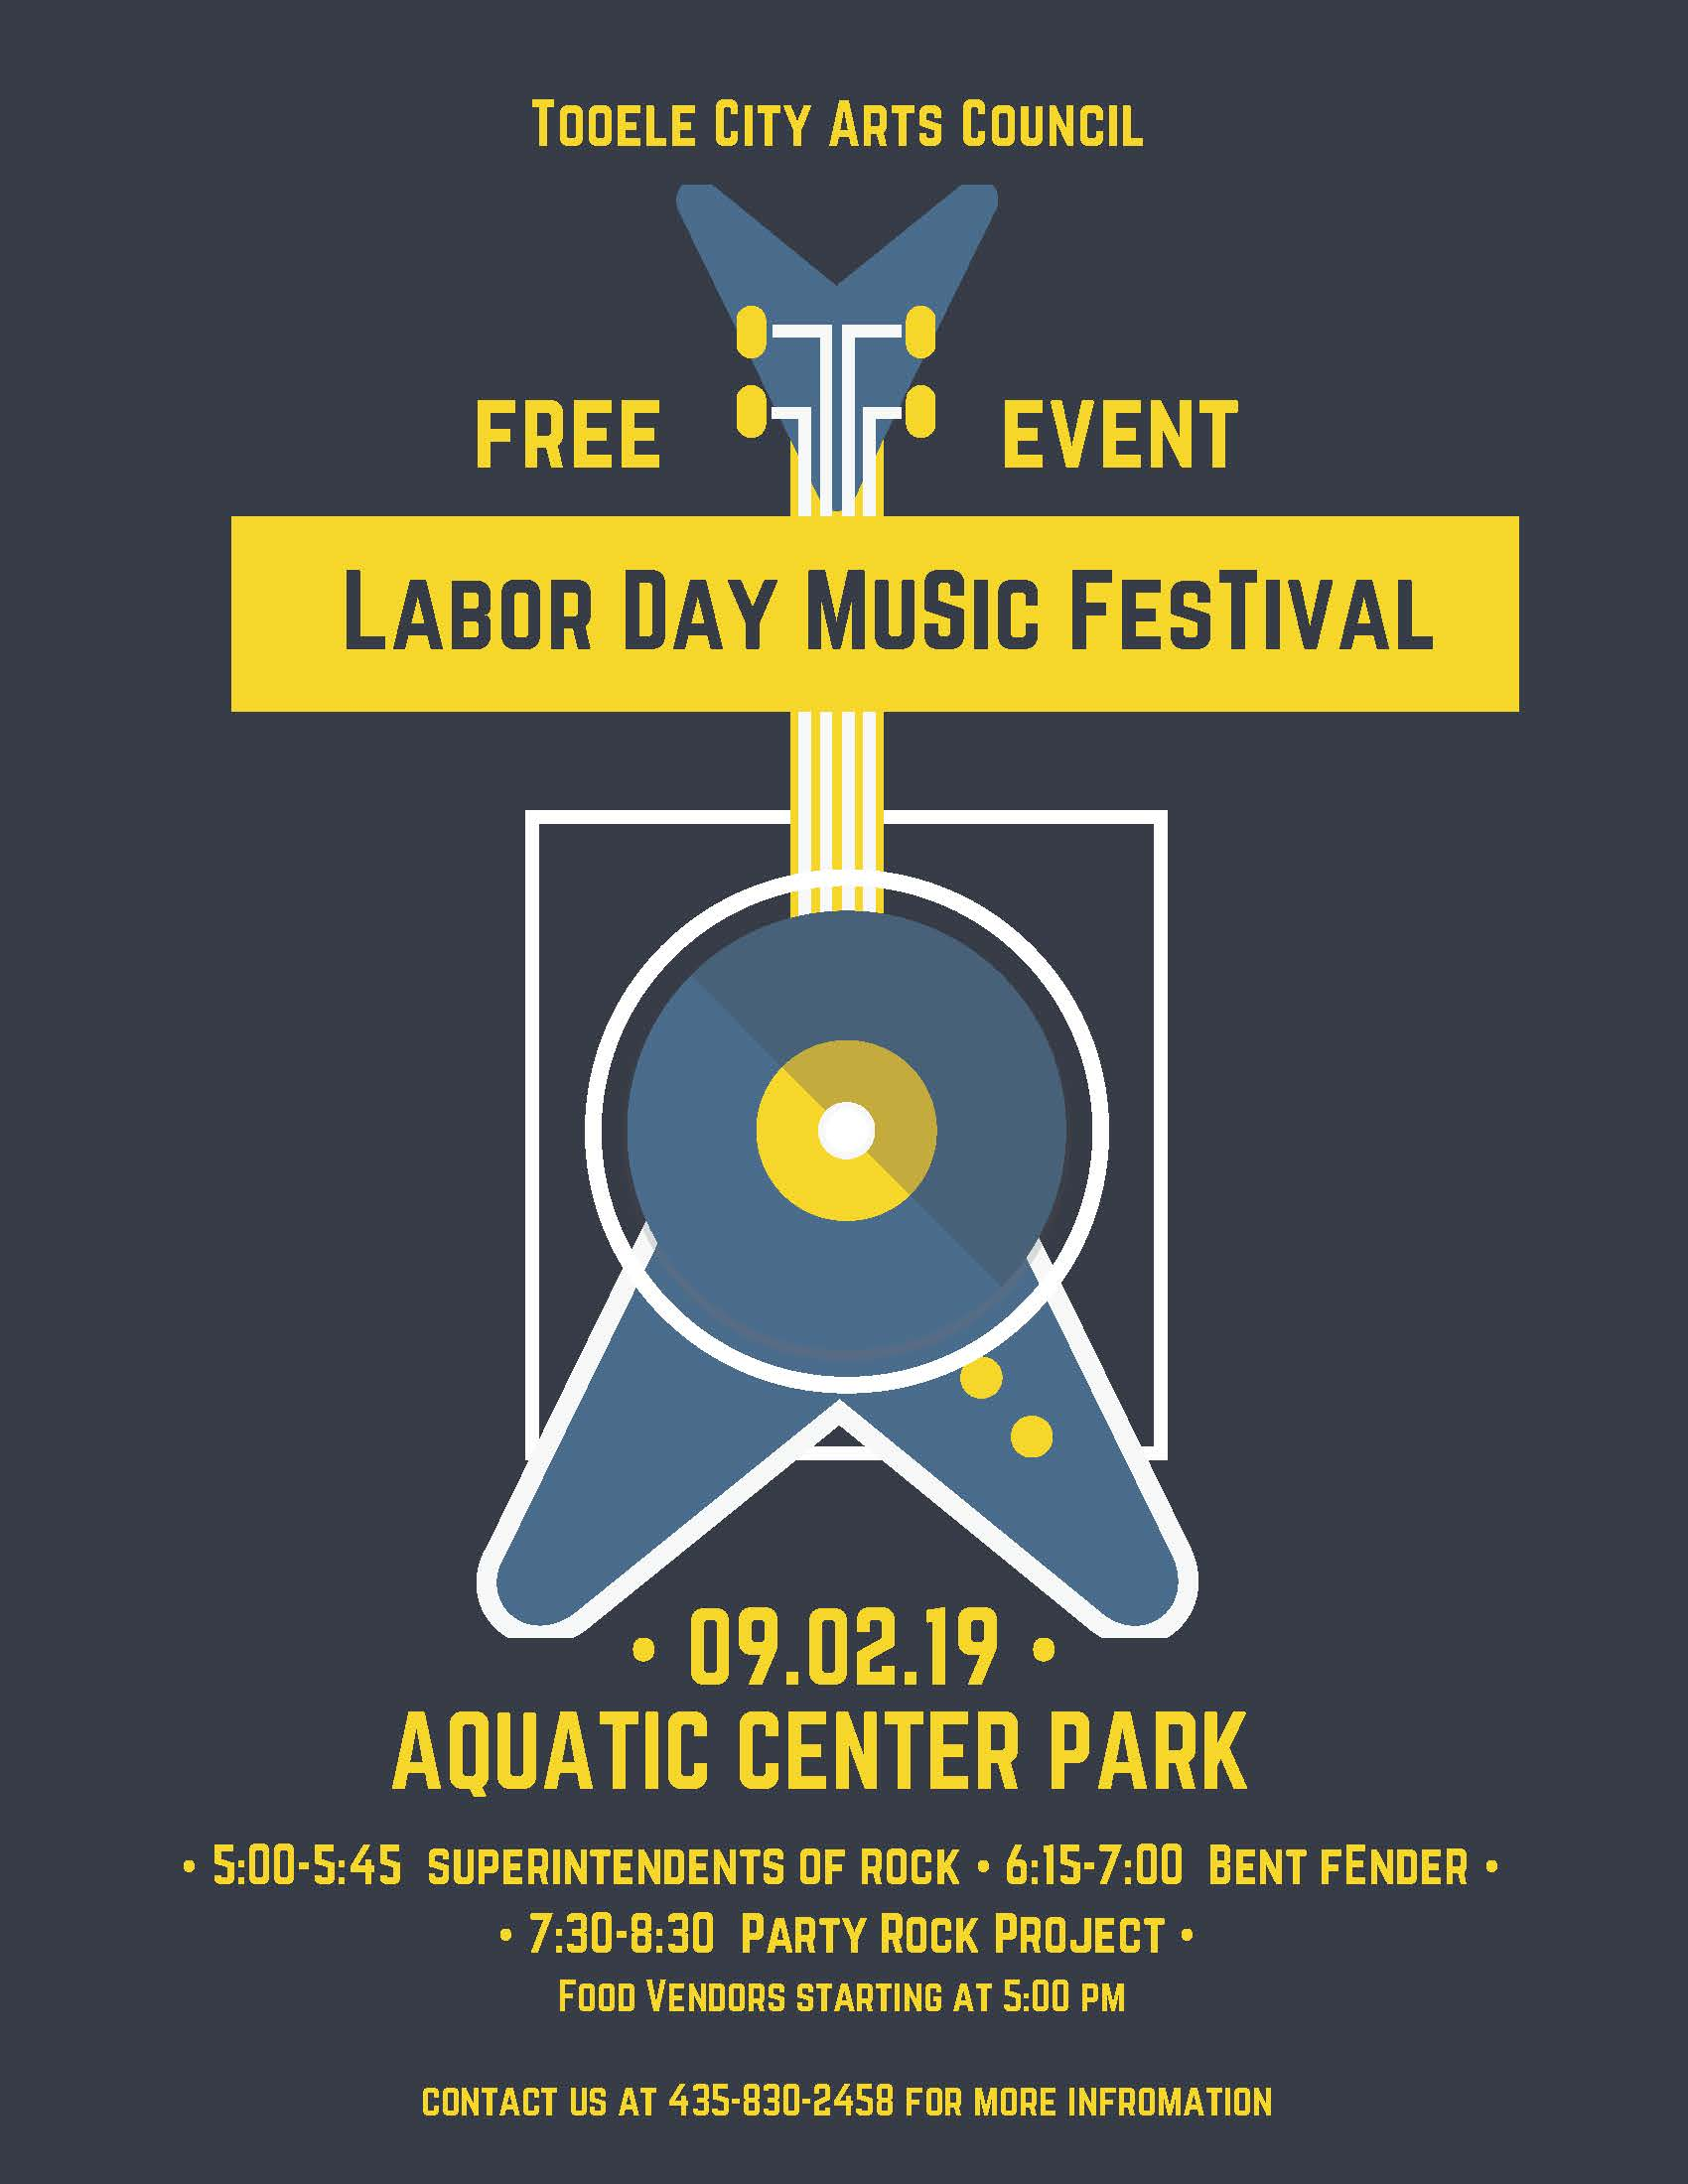 Labor Day Music Festival 2019 @ Aquatic Center Park | Tooele | Utah | United States